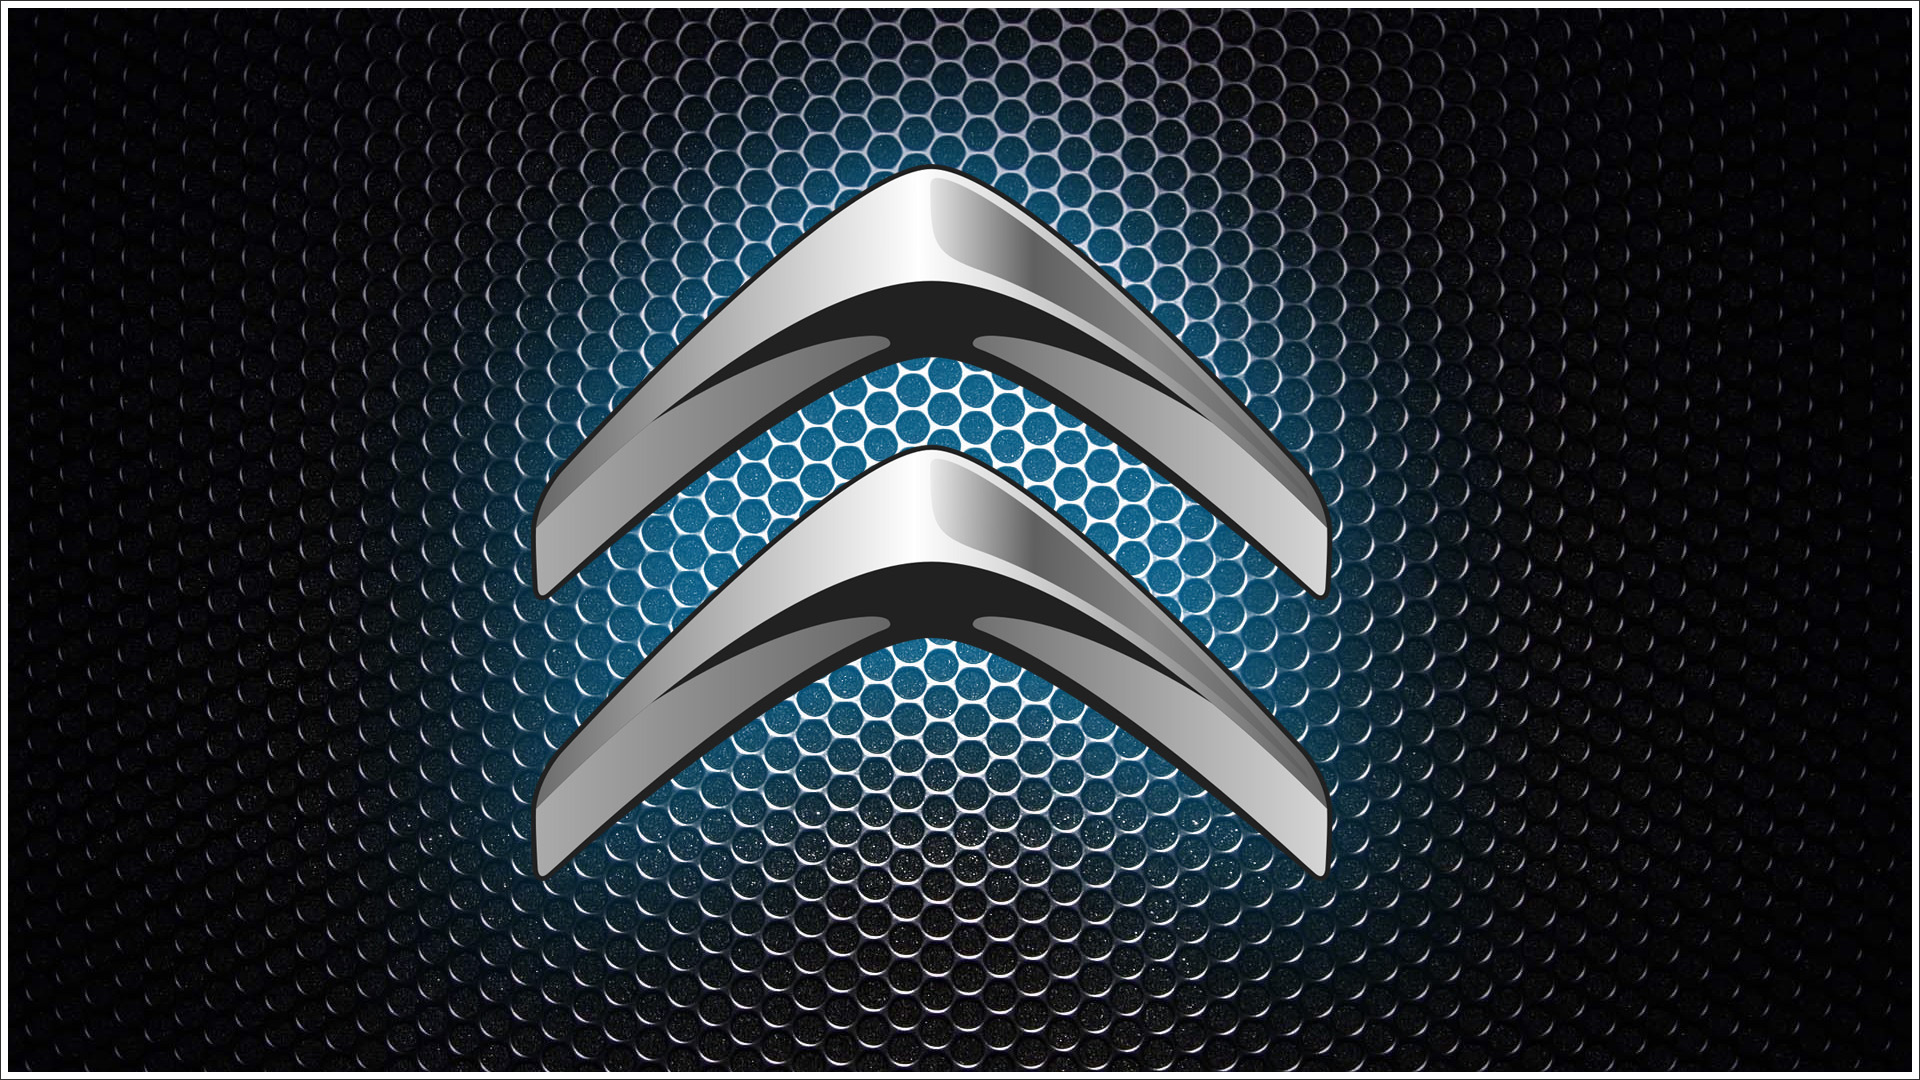 Citroen Logo additionally BasicRacewithAnimation furthermore Web besides Smart Cities Cyber Weaknesses as well Free Clipart Of An Animal Cell Membrane. on 3d car structure